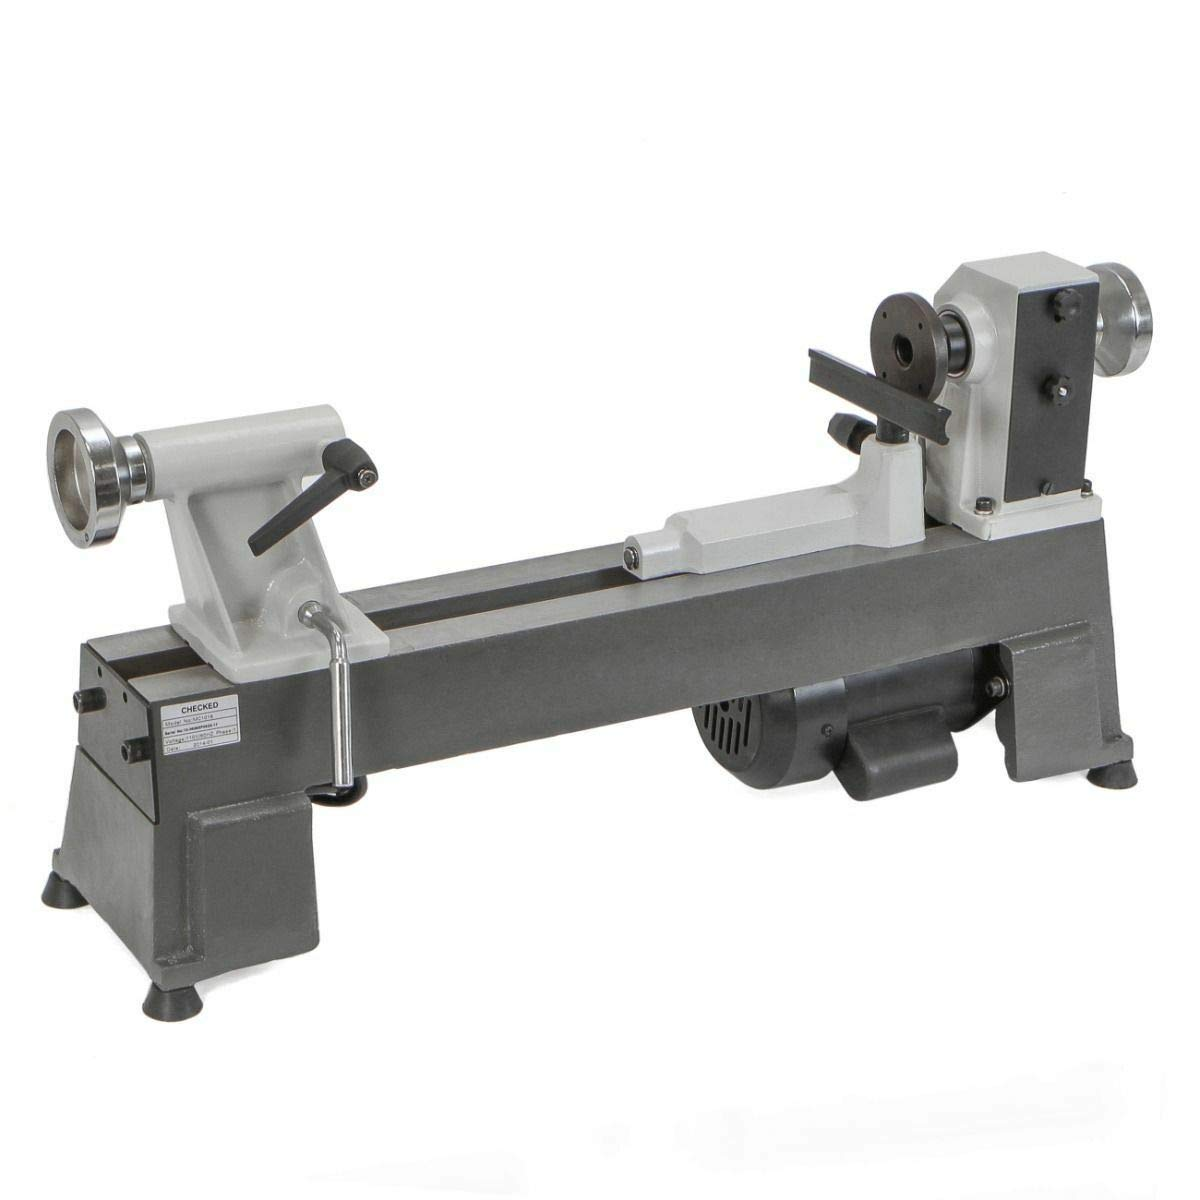 Easy Access, All-Cast-Iron Construction Heavy Duty 5 Speed Bench Top Power Turning Wood Lathe Tools New 10 X 18''